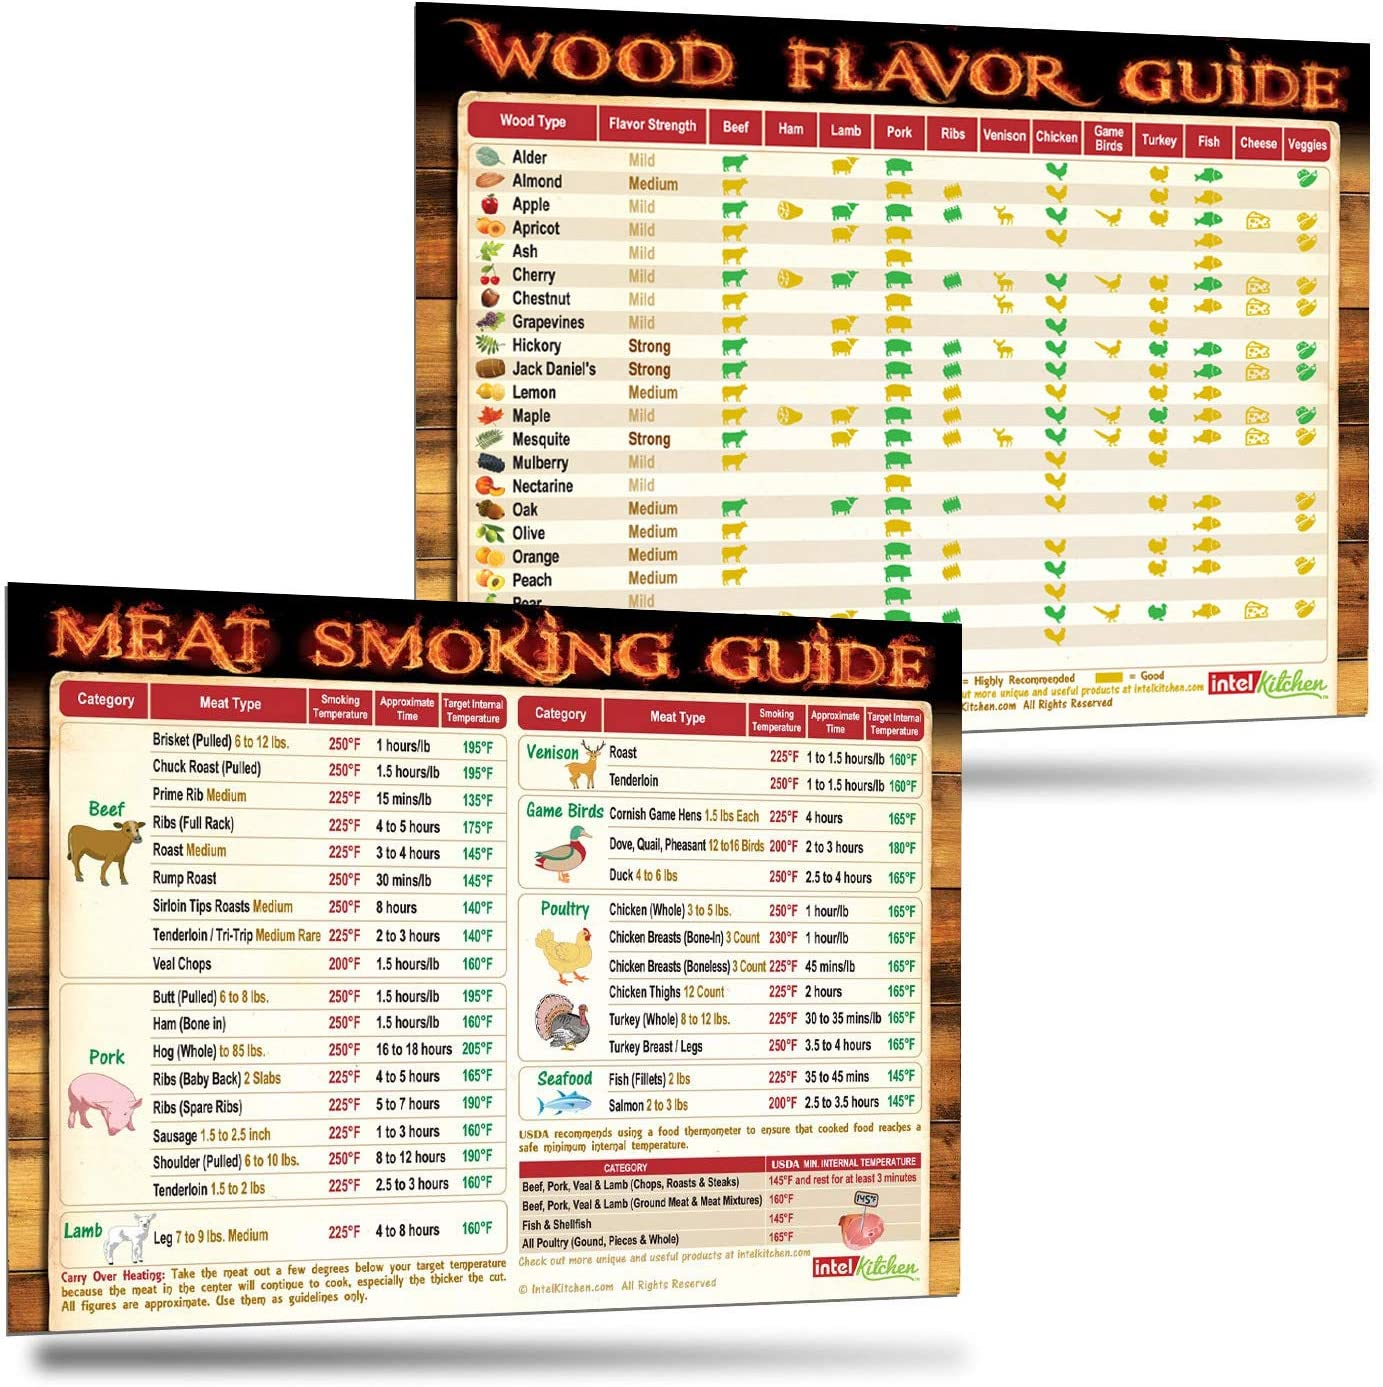 The Complete Meat Smoking Guide Gifts: The Only Meat Smoking Magnet Covers 31 Meats with Smoker Time & Target Temperature and The Only Wood Flavor Chart Has Latest Recommendations on 23 Woods 12 Foods